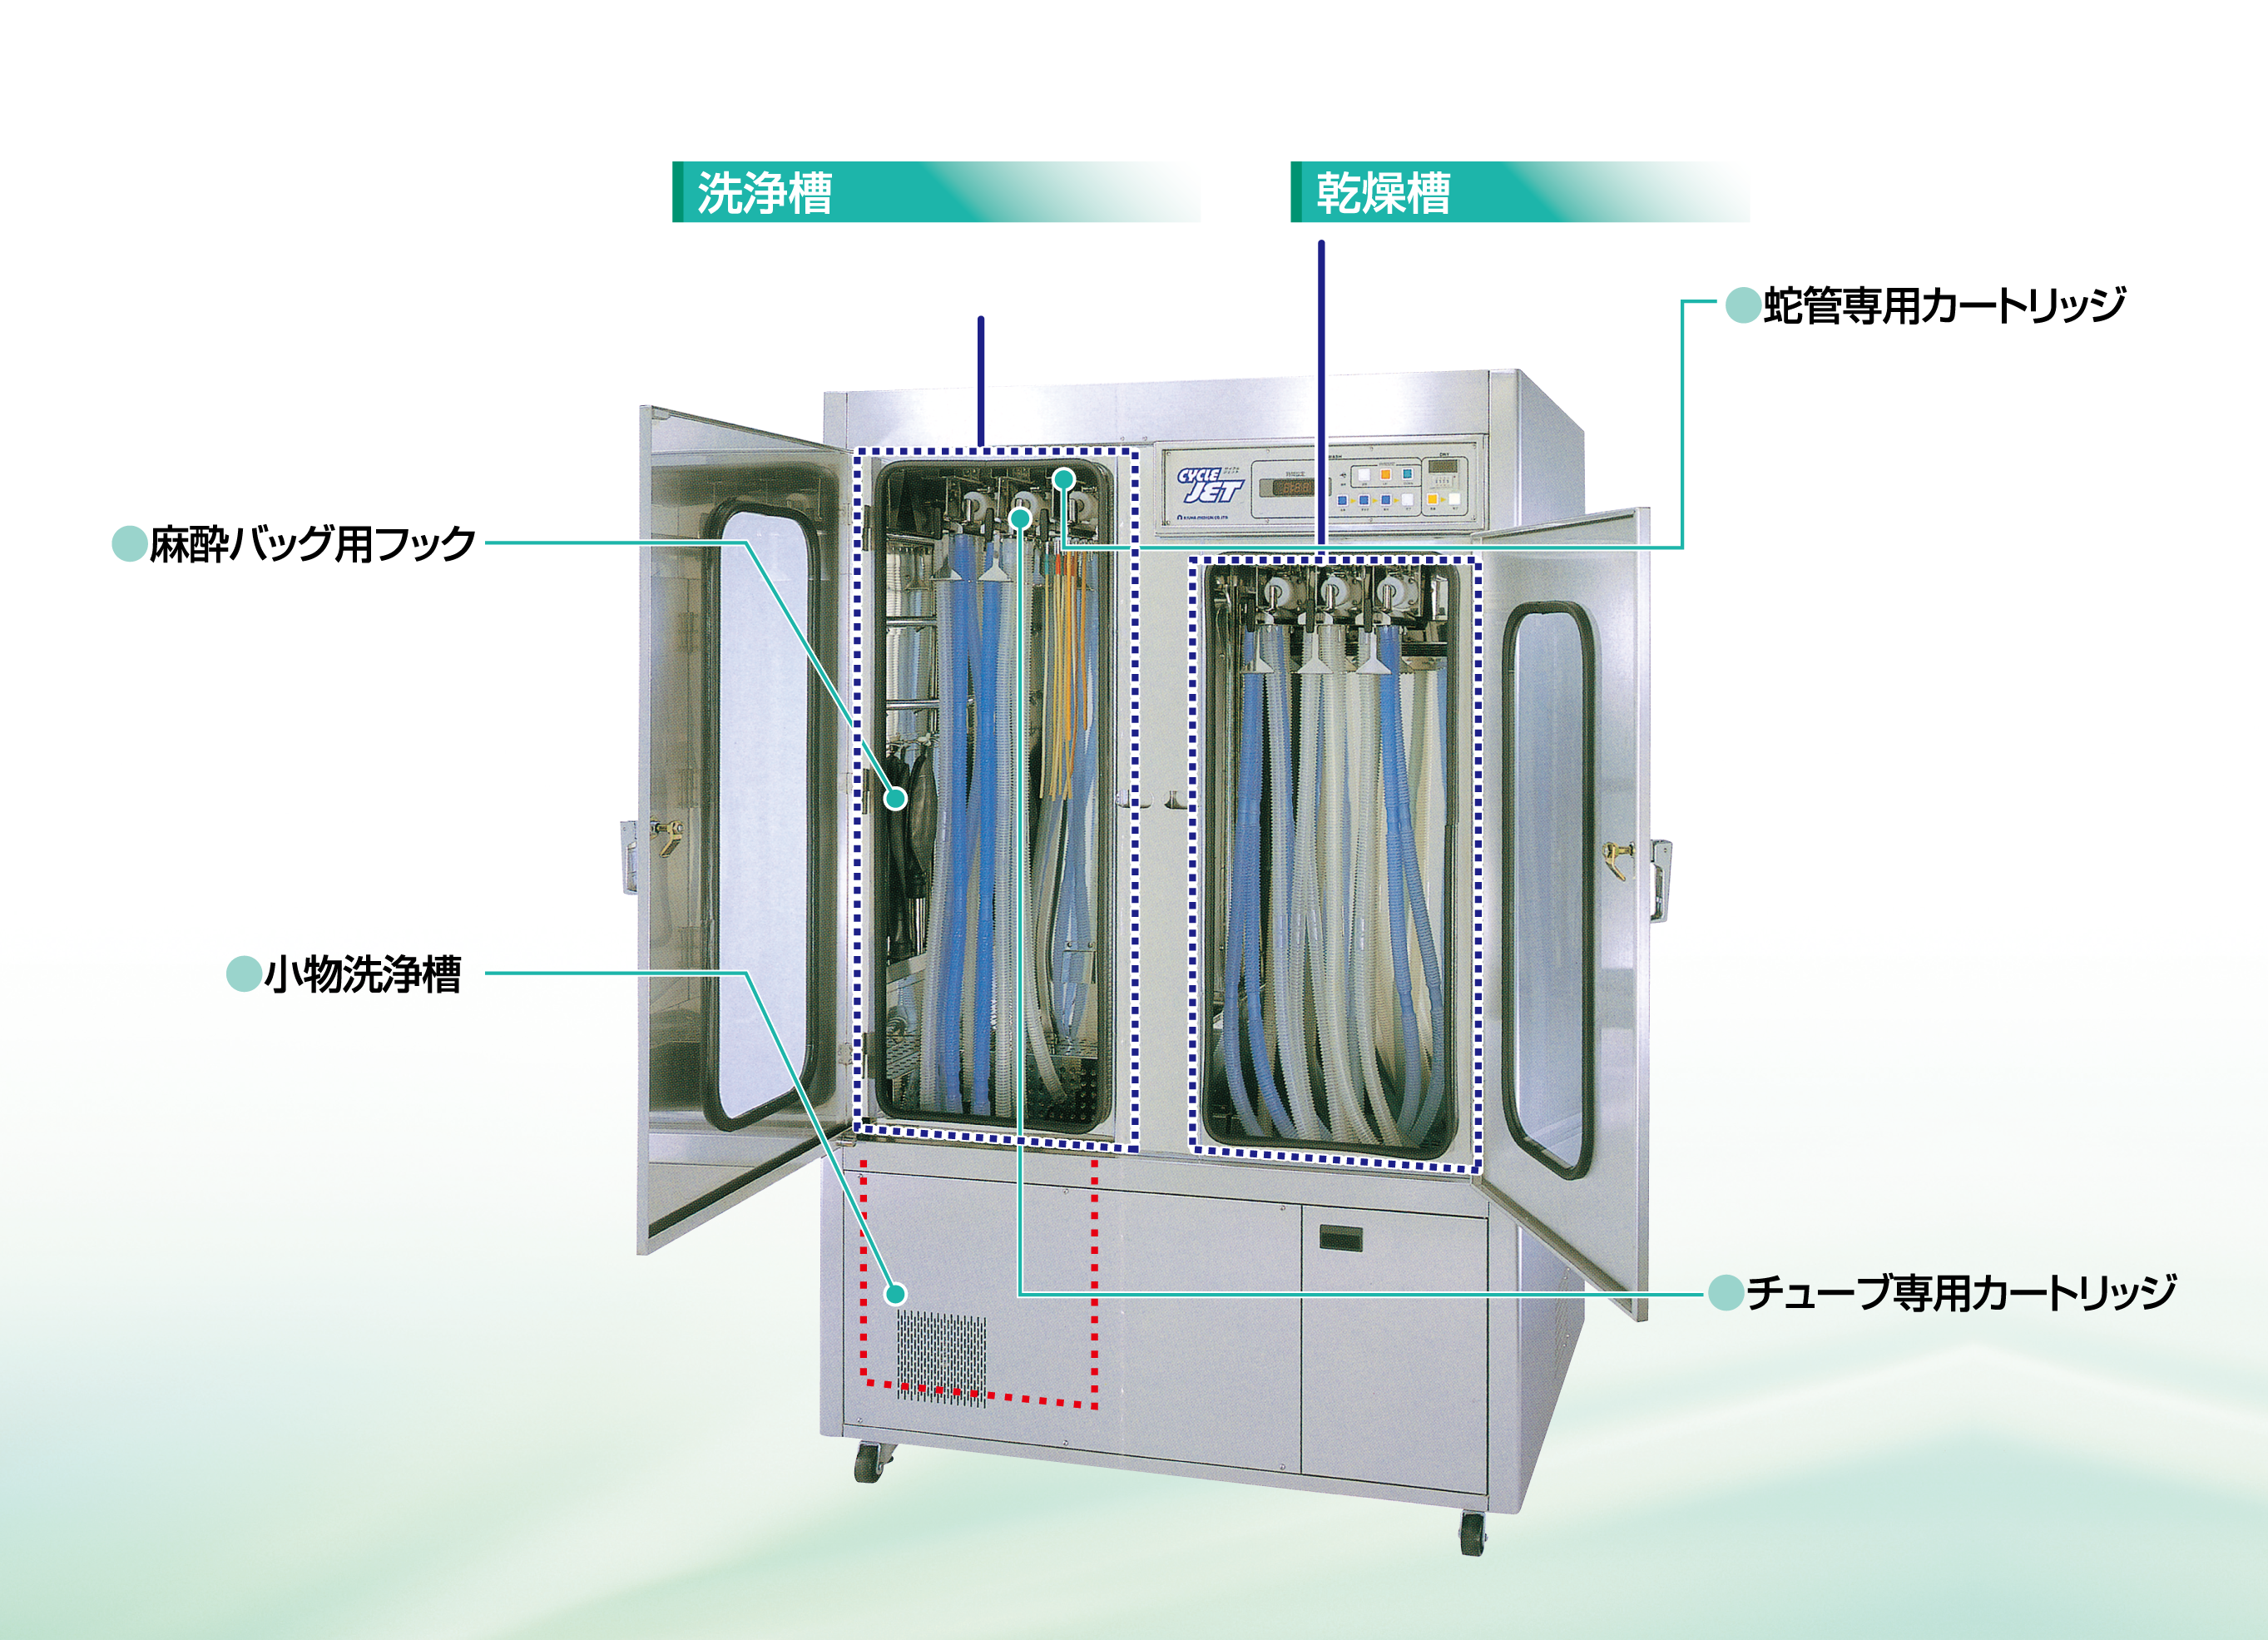 CYCLEJET ASK 6000MD 本体 説明あり